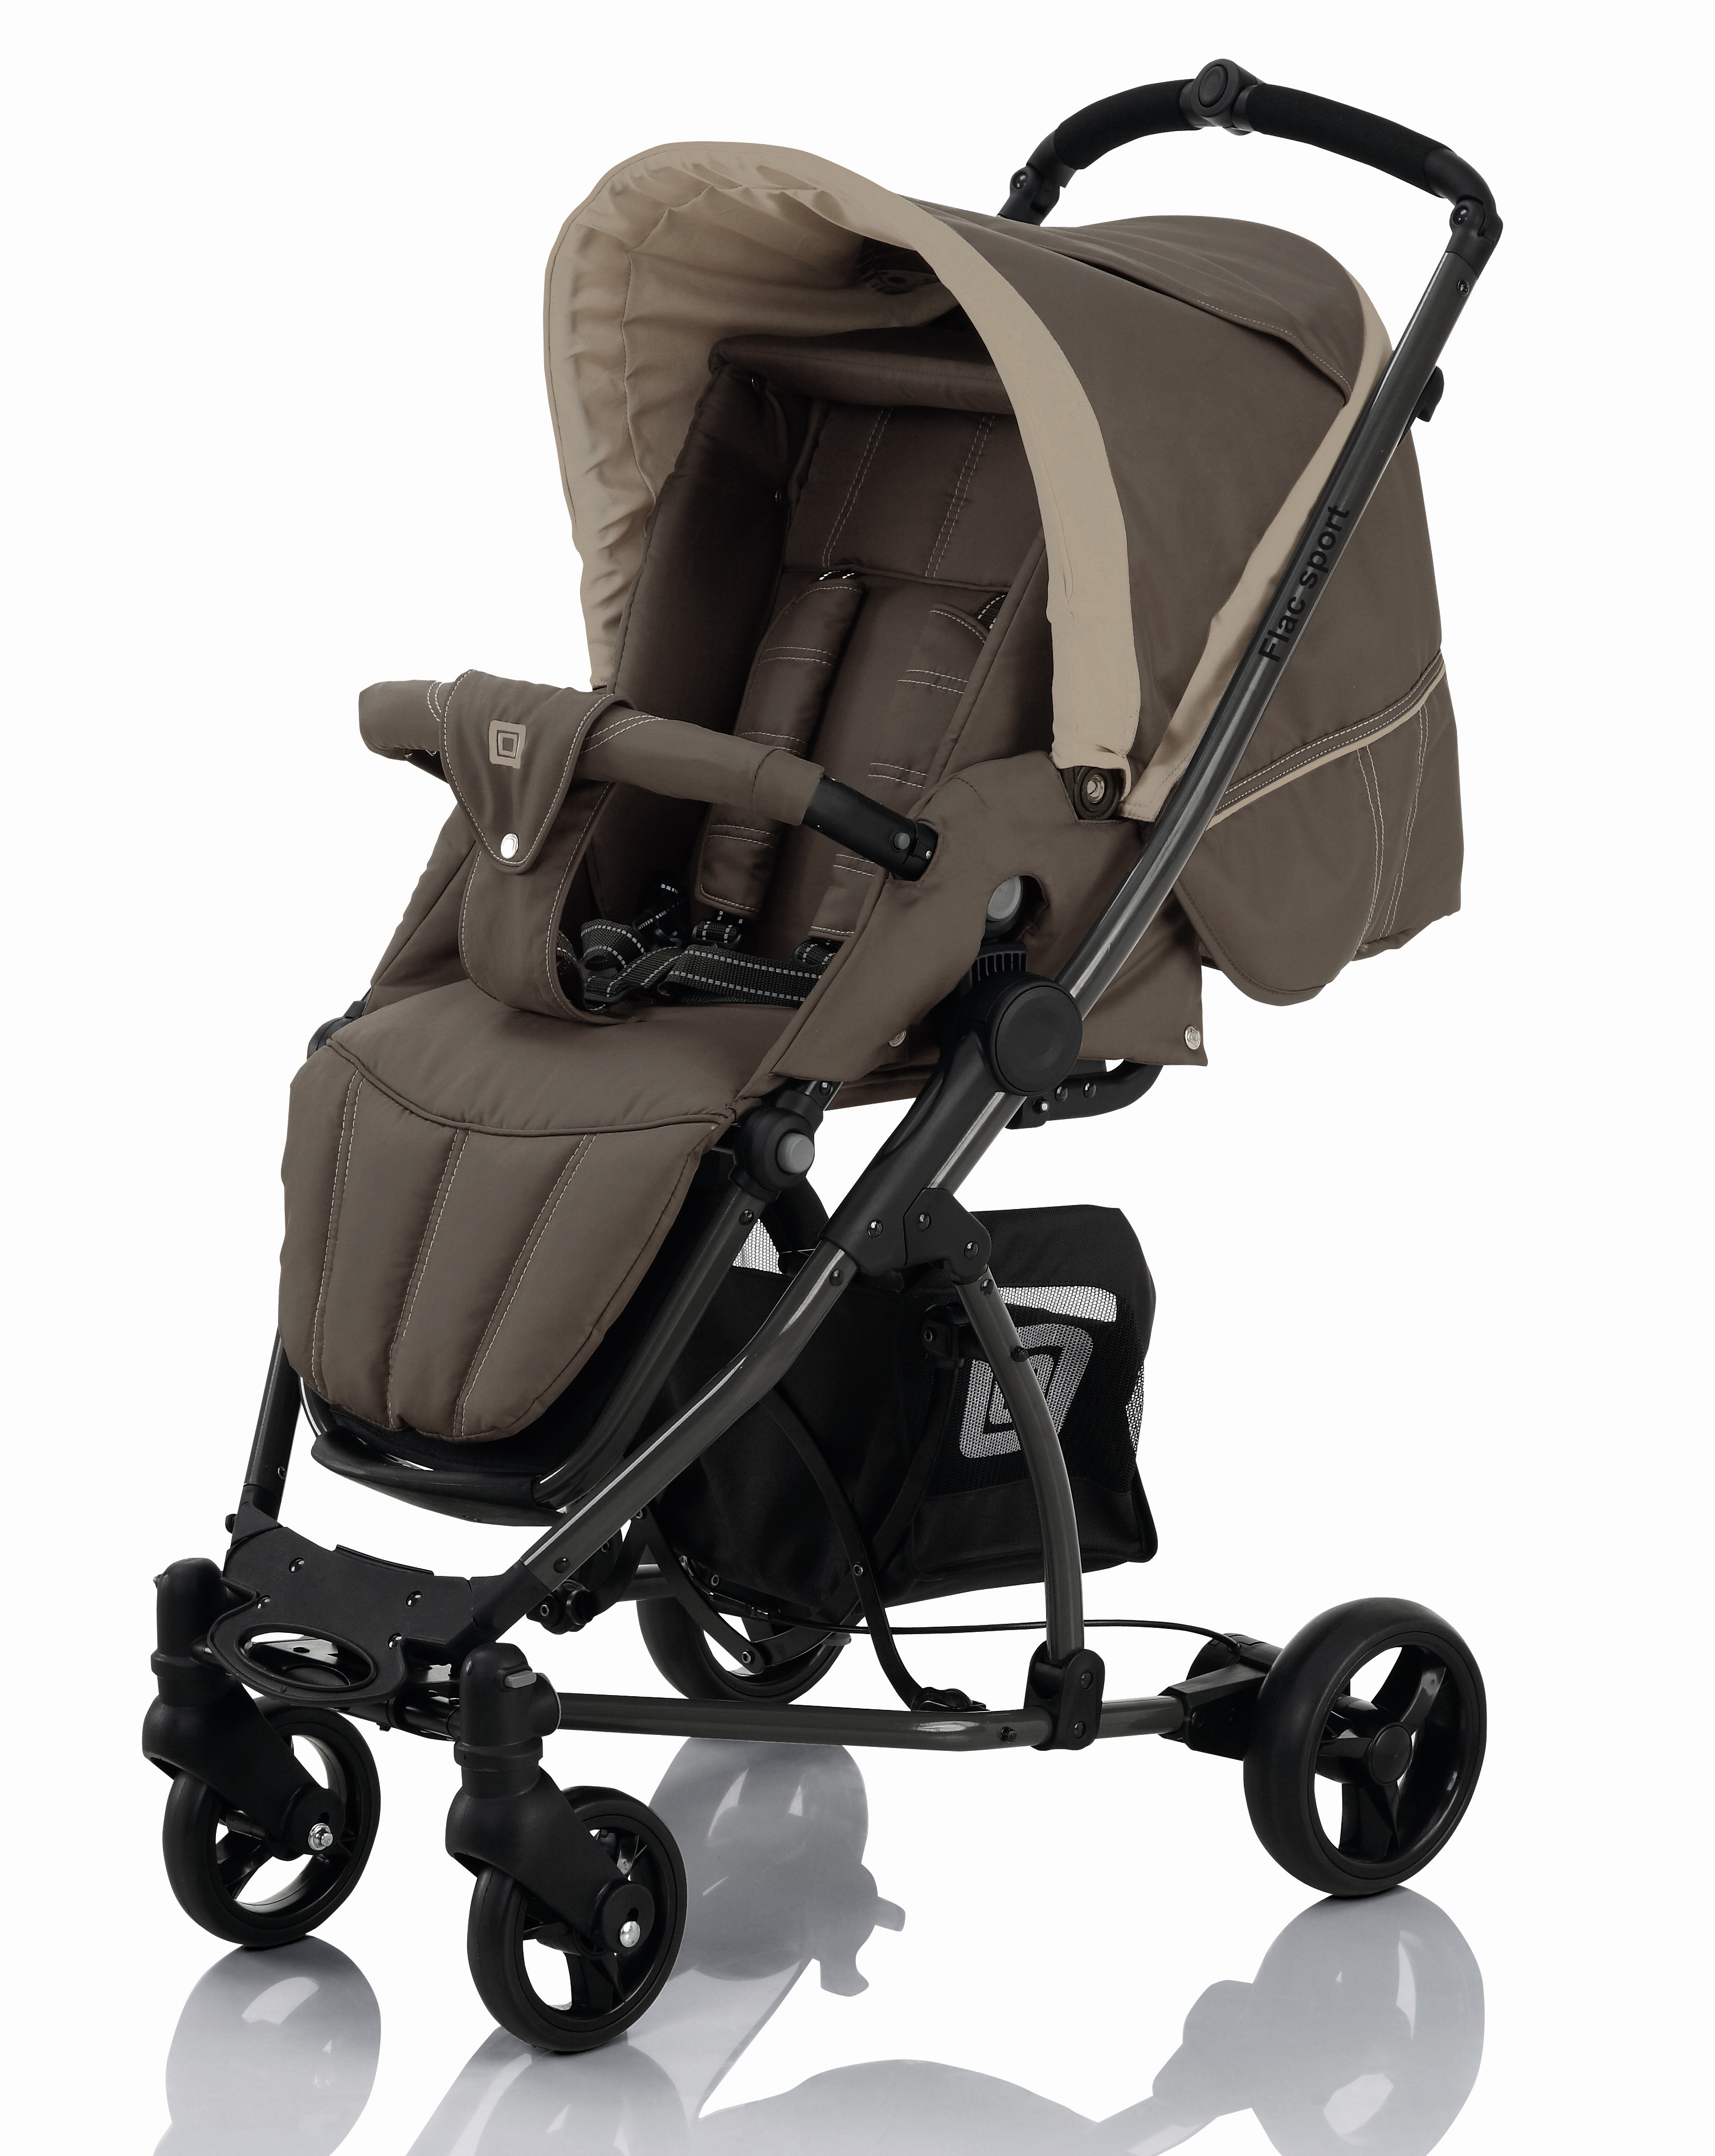 babywelt moon pushchair flac sport buy at kidsroom brand shops moon moon strollers buggies. Black Bedroom Furniture Sets. Home Design Ideas